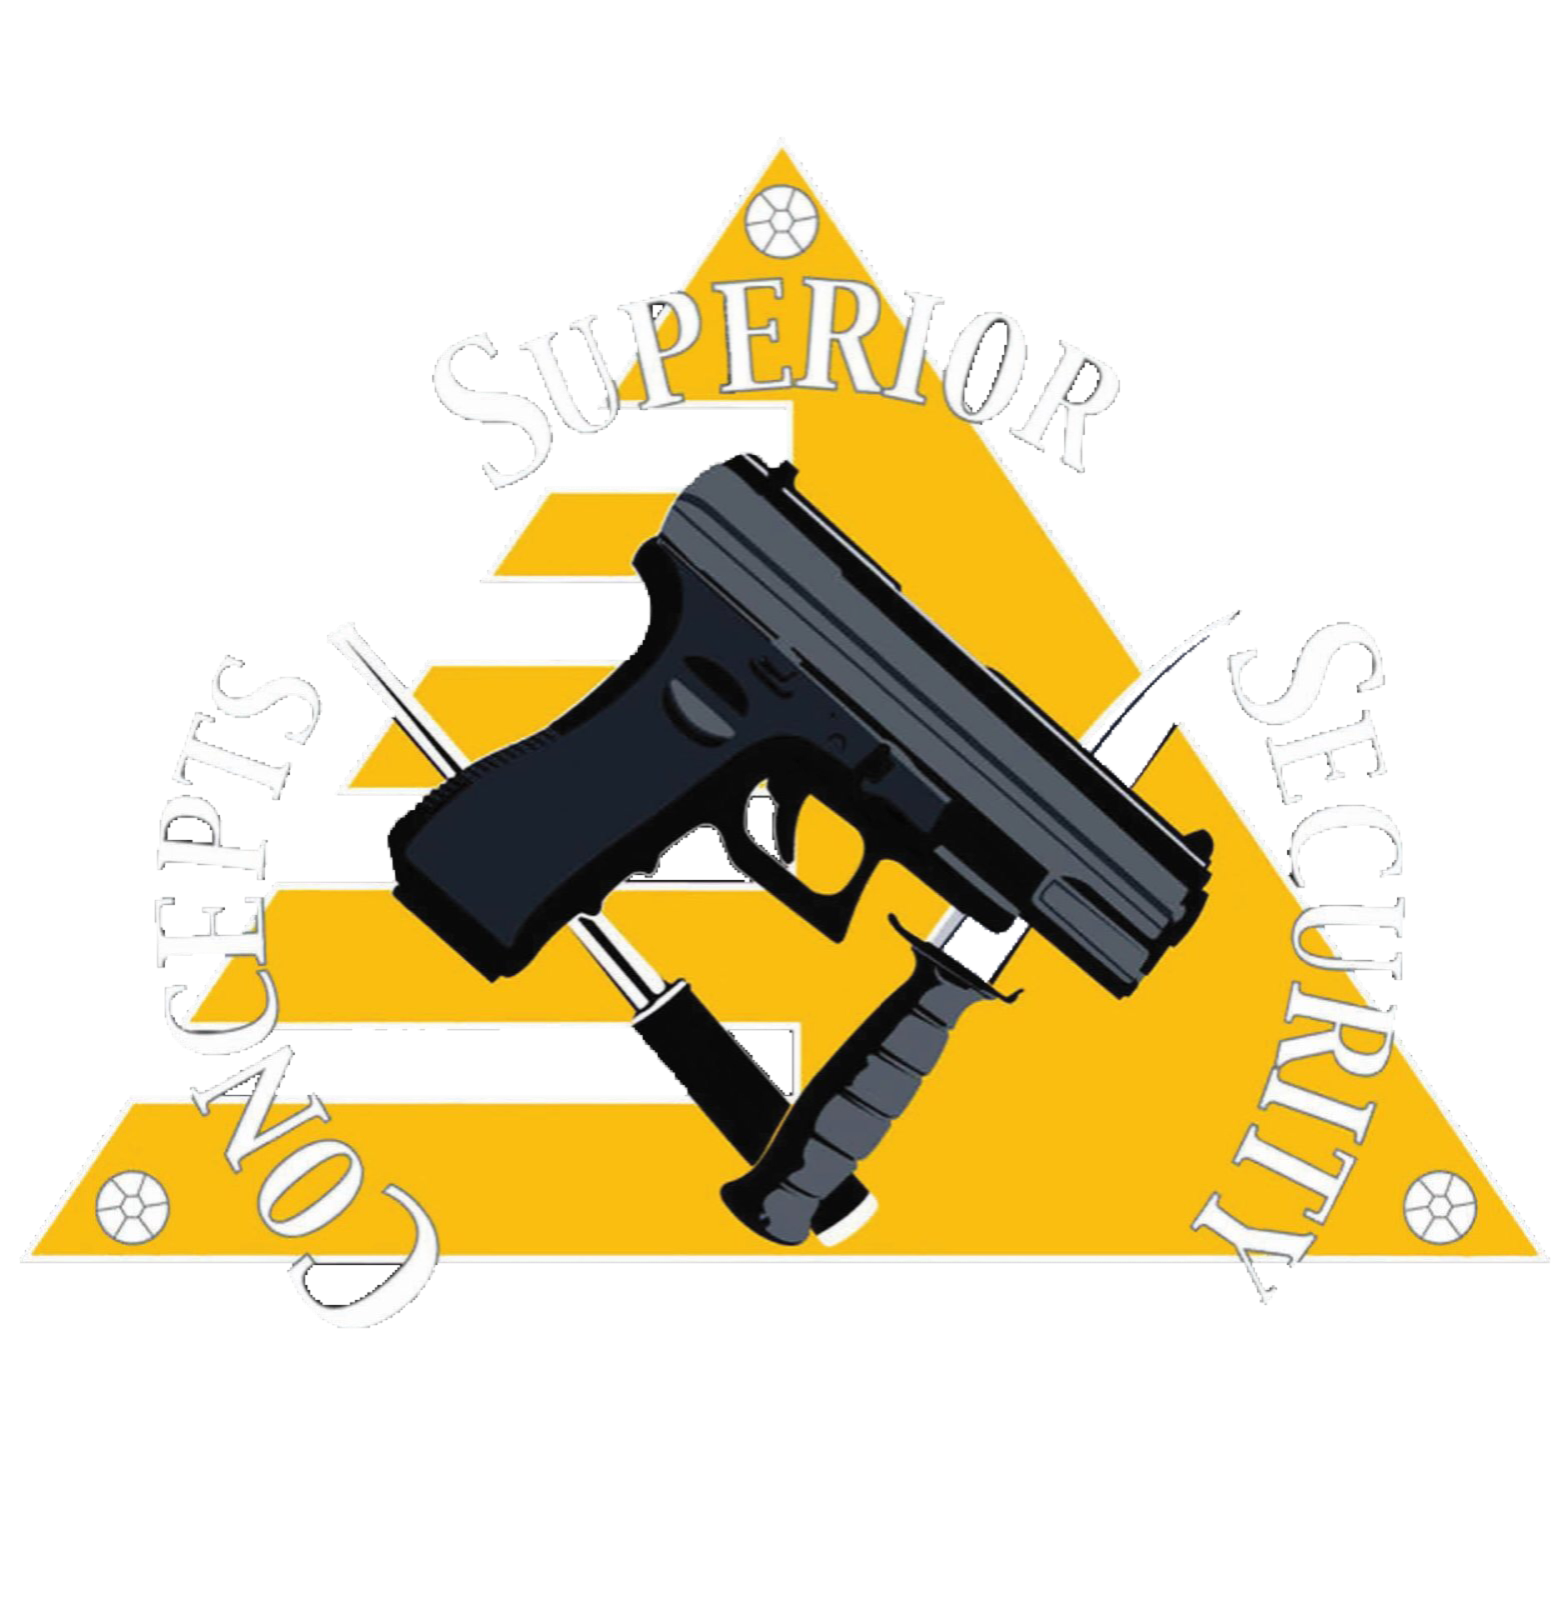 Superior Security Concepts Handgun Safety & Defensive Firearms Training